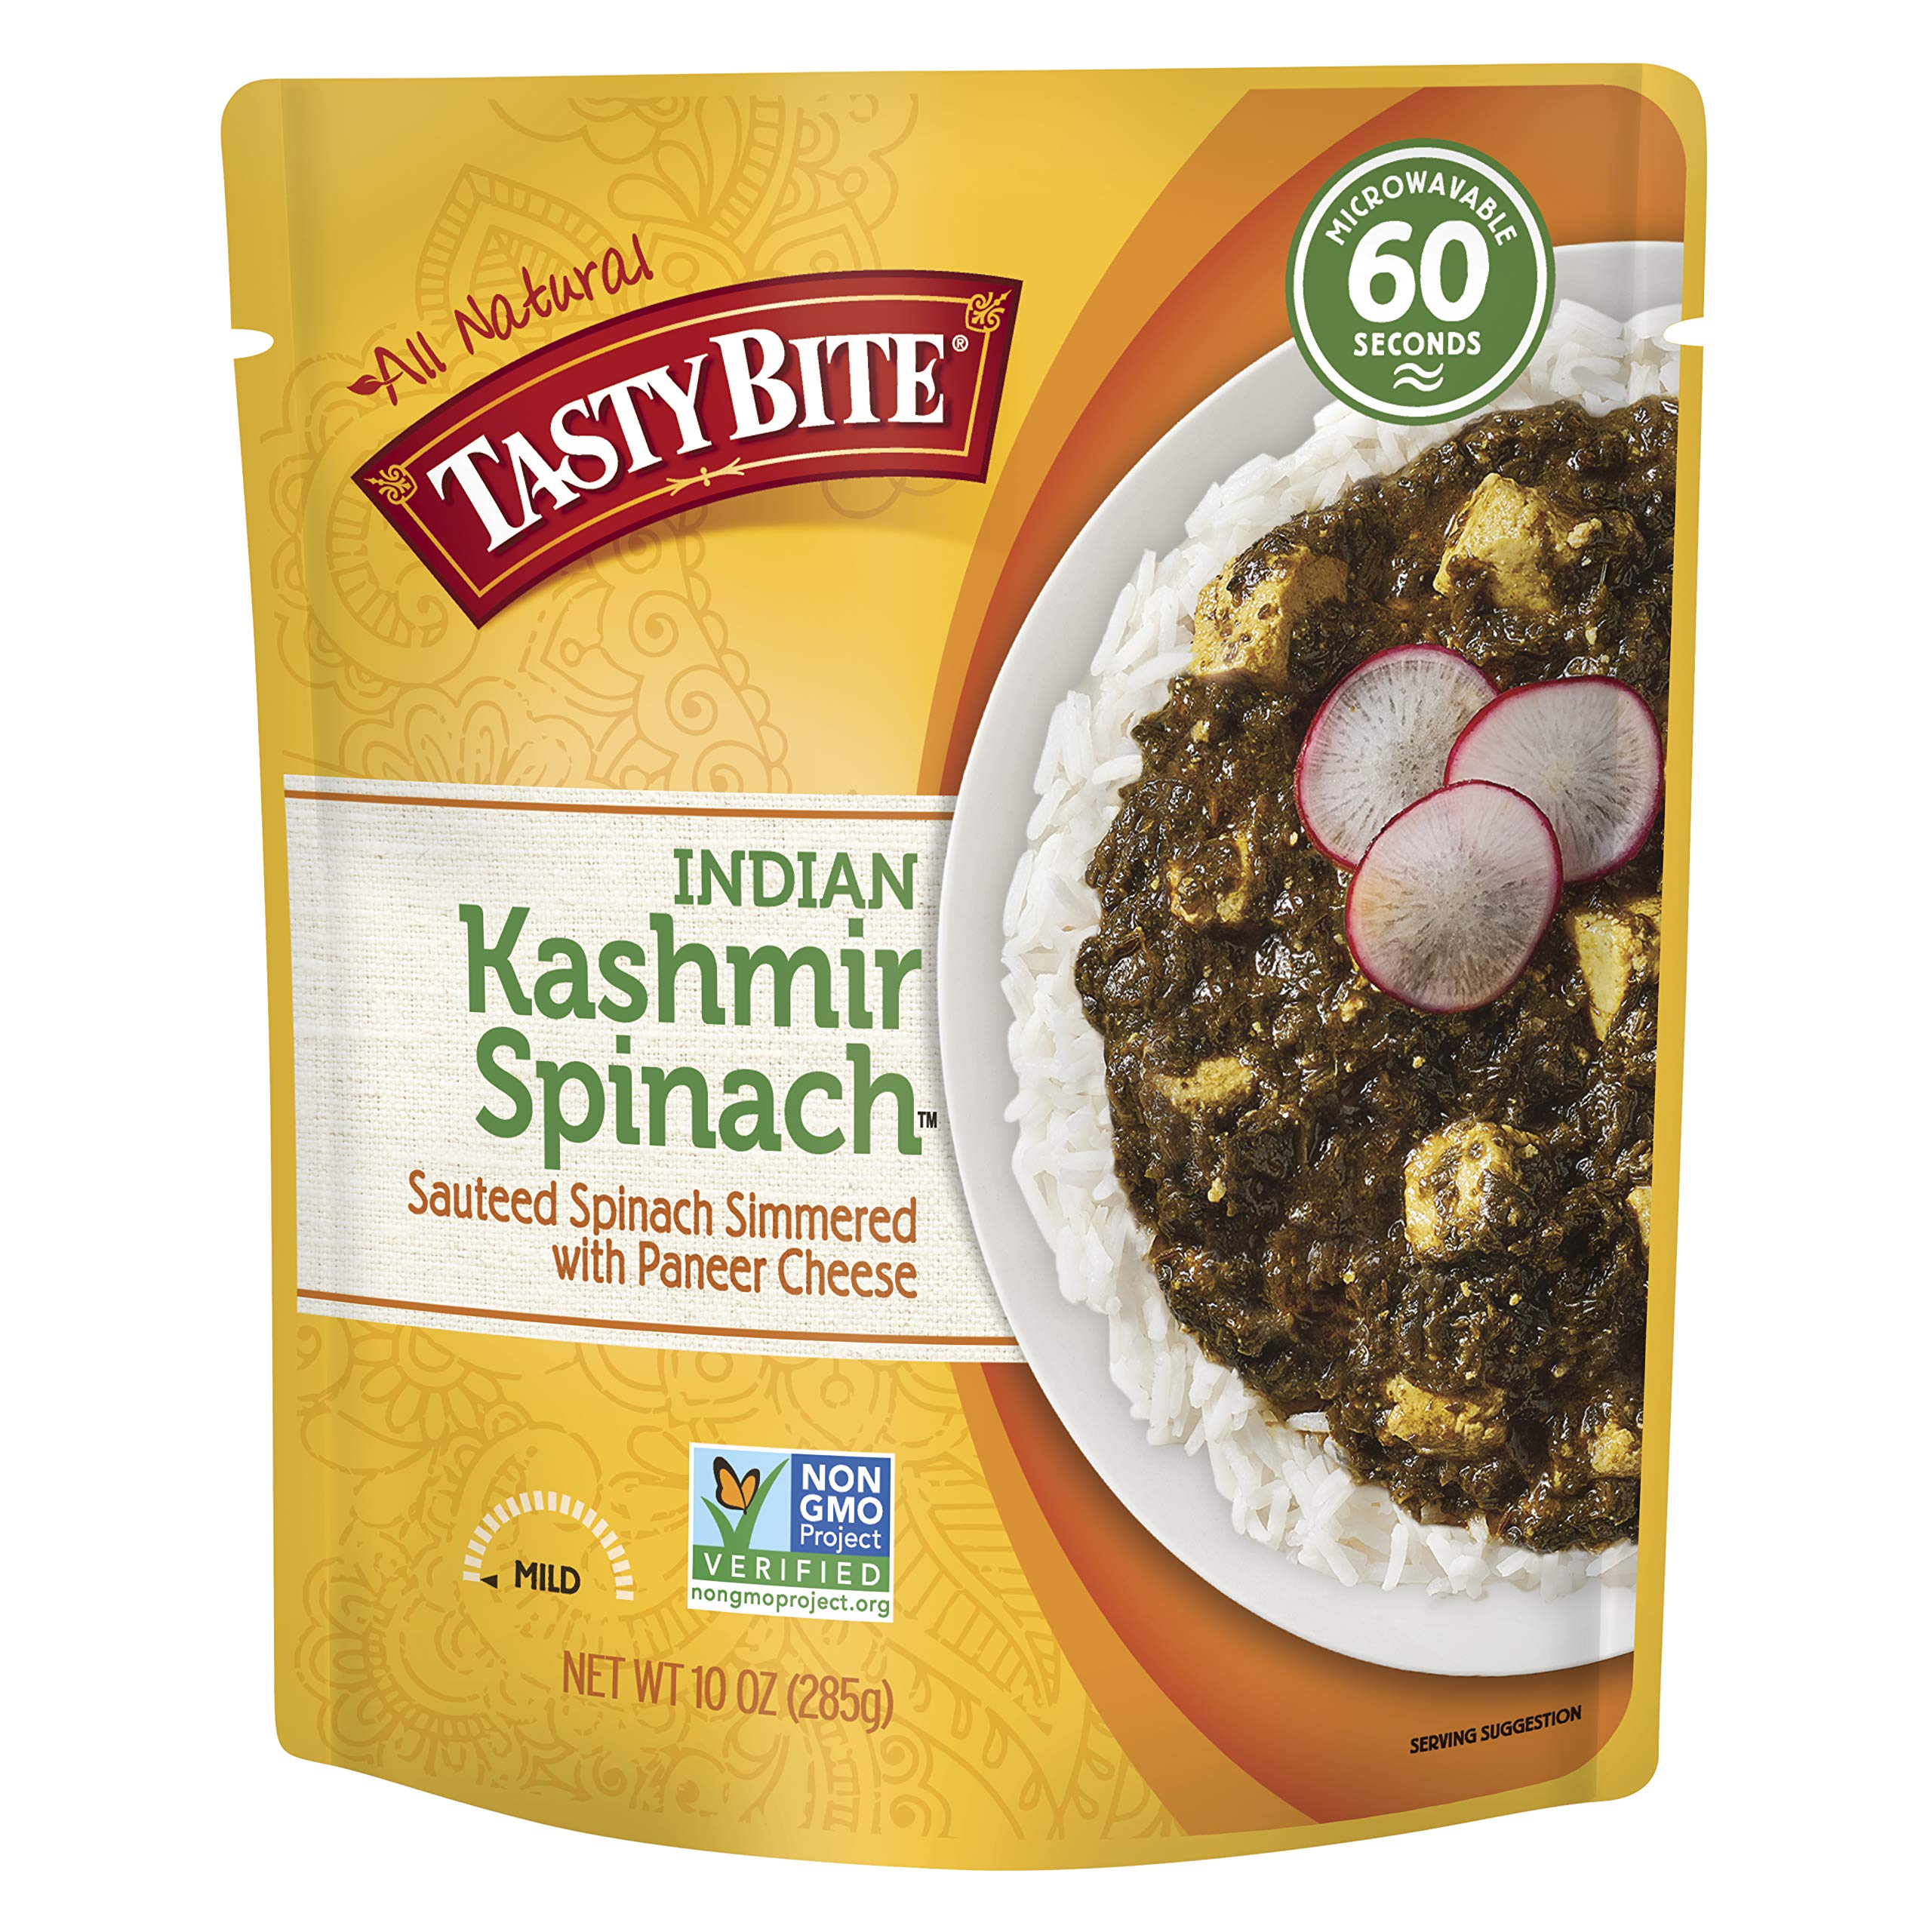 Tasty Bite Indian Entree Kashmir Spinach 10 Ounce (Pack of 6), Fully Cooked Indian Entrée with Sautéed Spinach with Paneer Cheese, Vegetarian, Gluten Free, Microwaveable, Ready to Eat by Tasty Bite